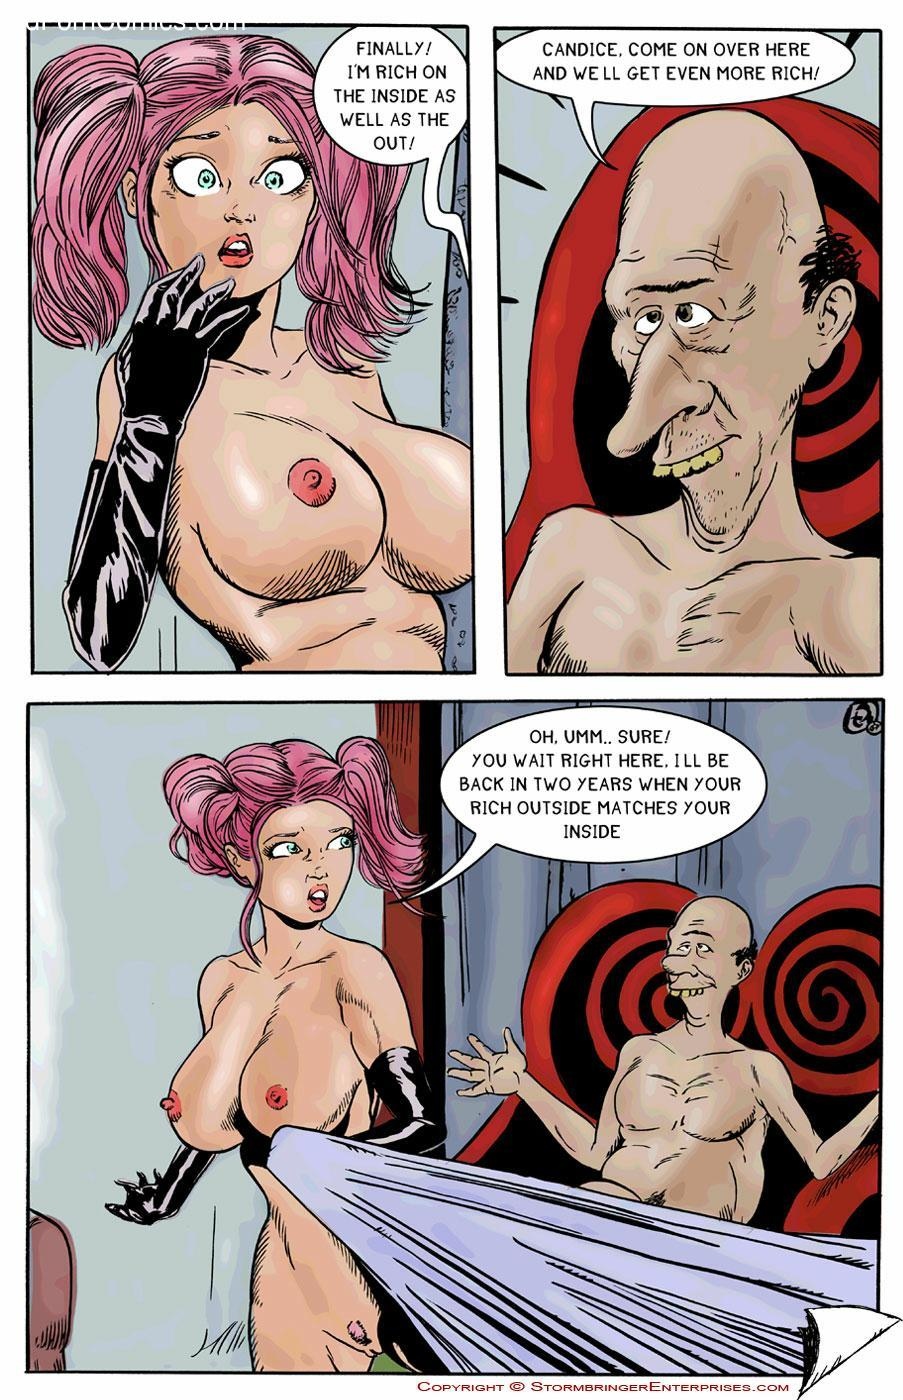 Erotic Adventures of Candice 01-1810 free sex comic